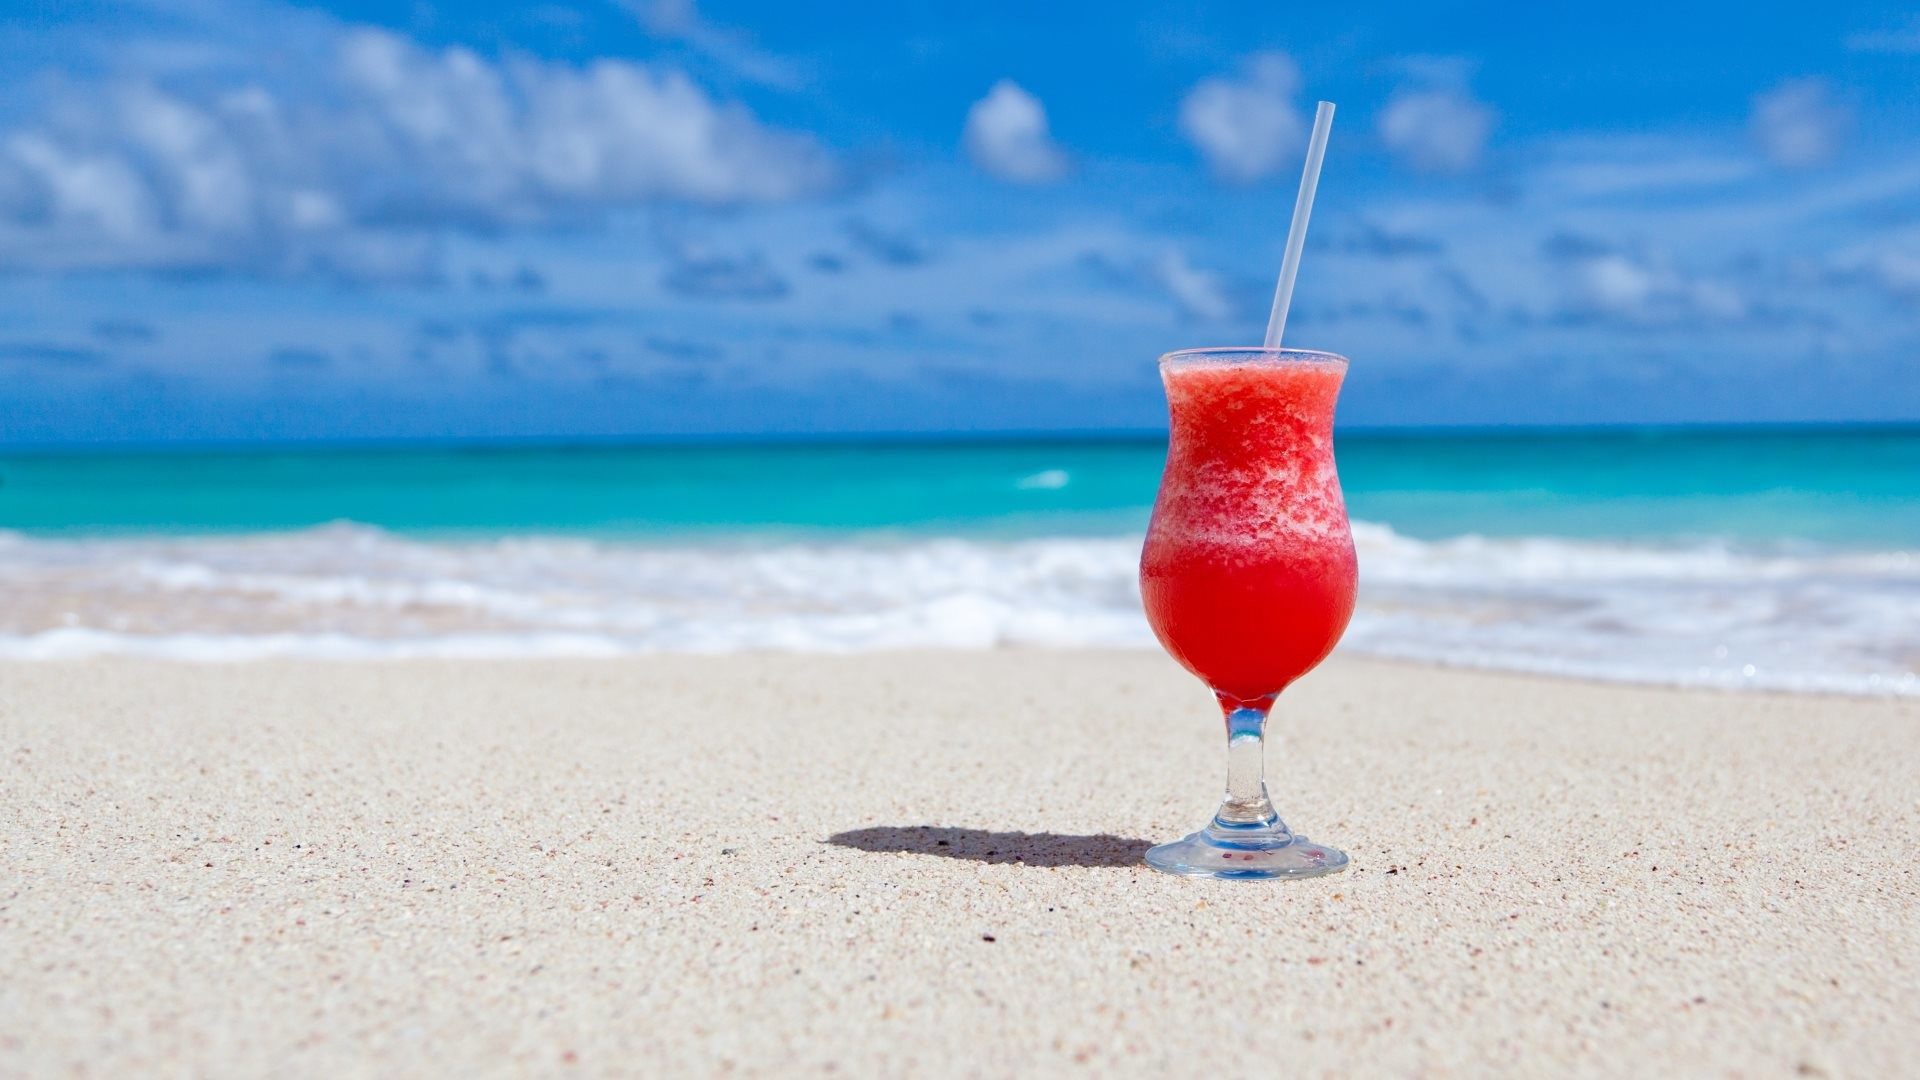 4K HD Wallpaper: Exotic Cocktail on Caribbean Beach